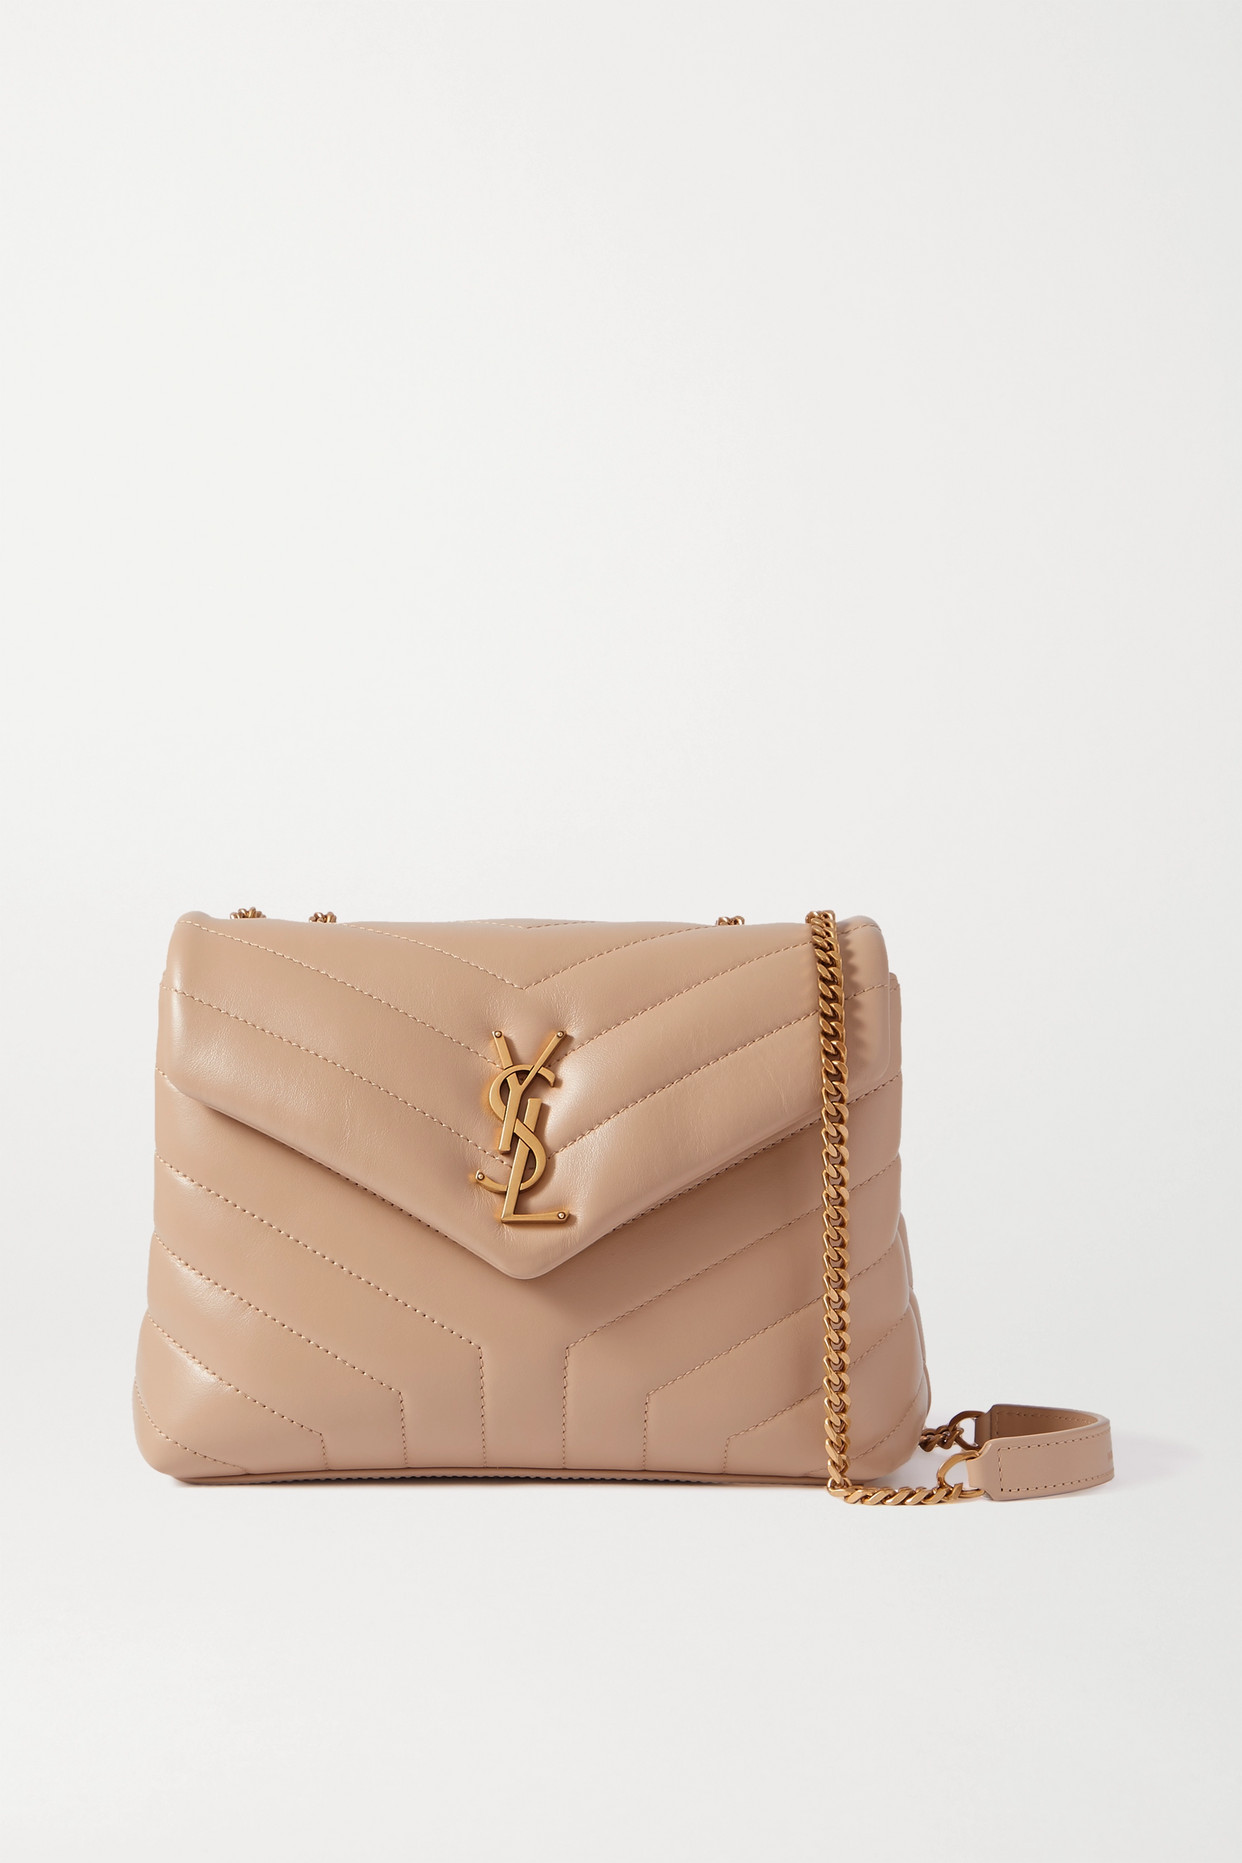 SAINT LAURENT - Loulou Small Quilted Leather Shoulder Bag - Neutrals - one size